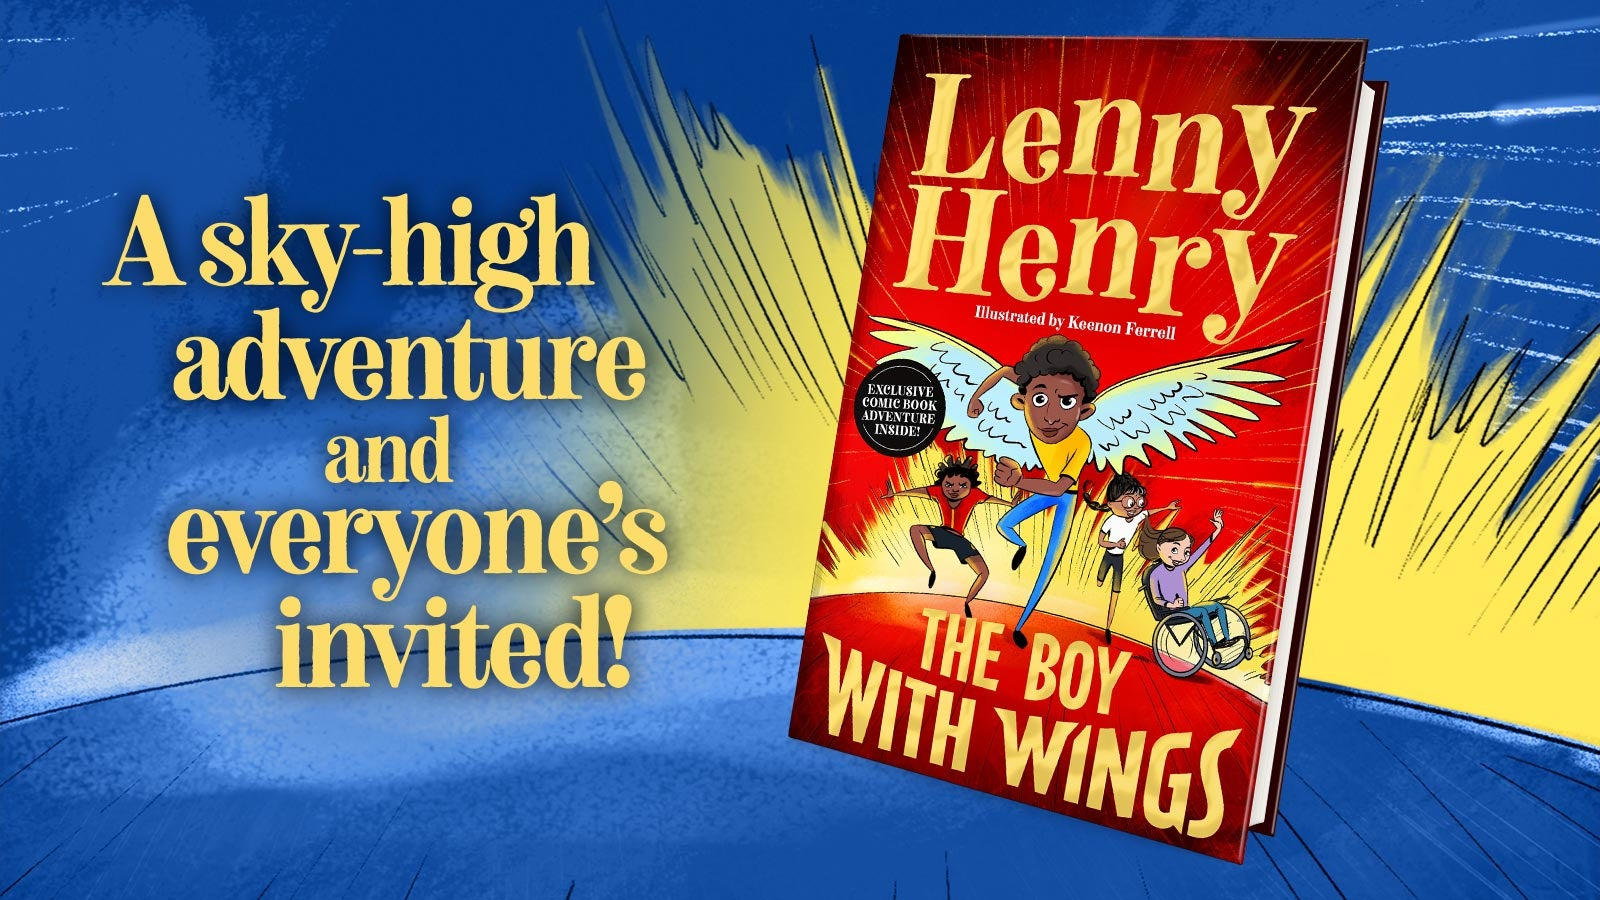 A picture of Lenny Henry's book The Boy with Wings